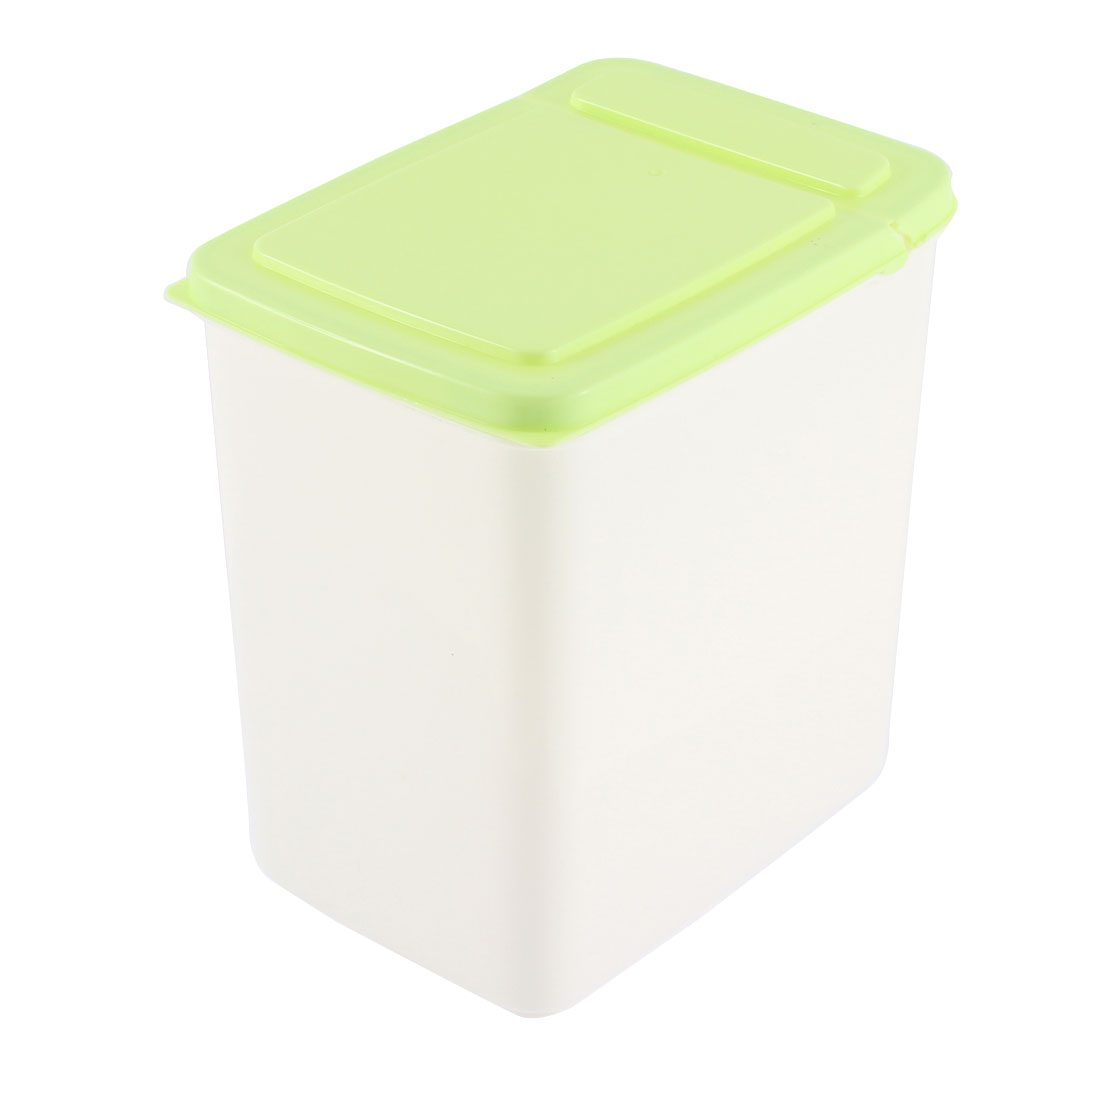 Office Plastic Cuboid Shaped Airtight Food Storage Box Container 2L Green